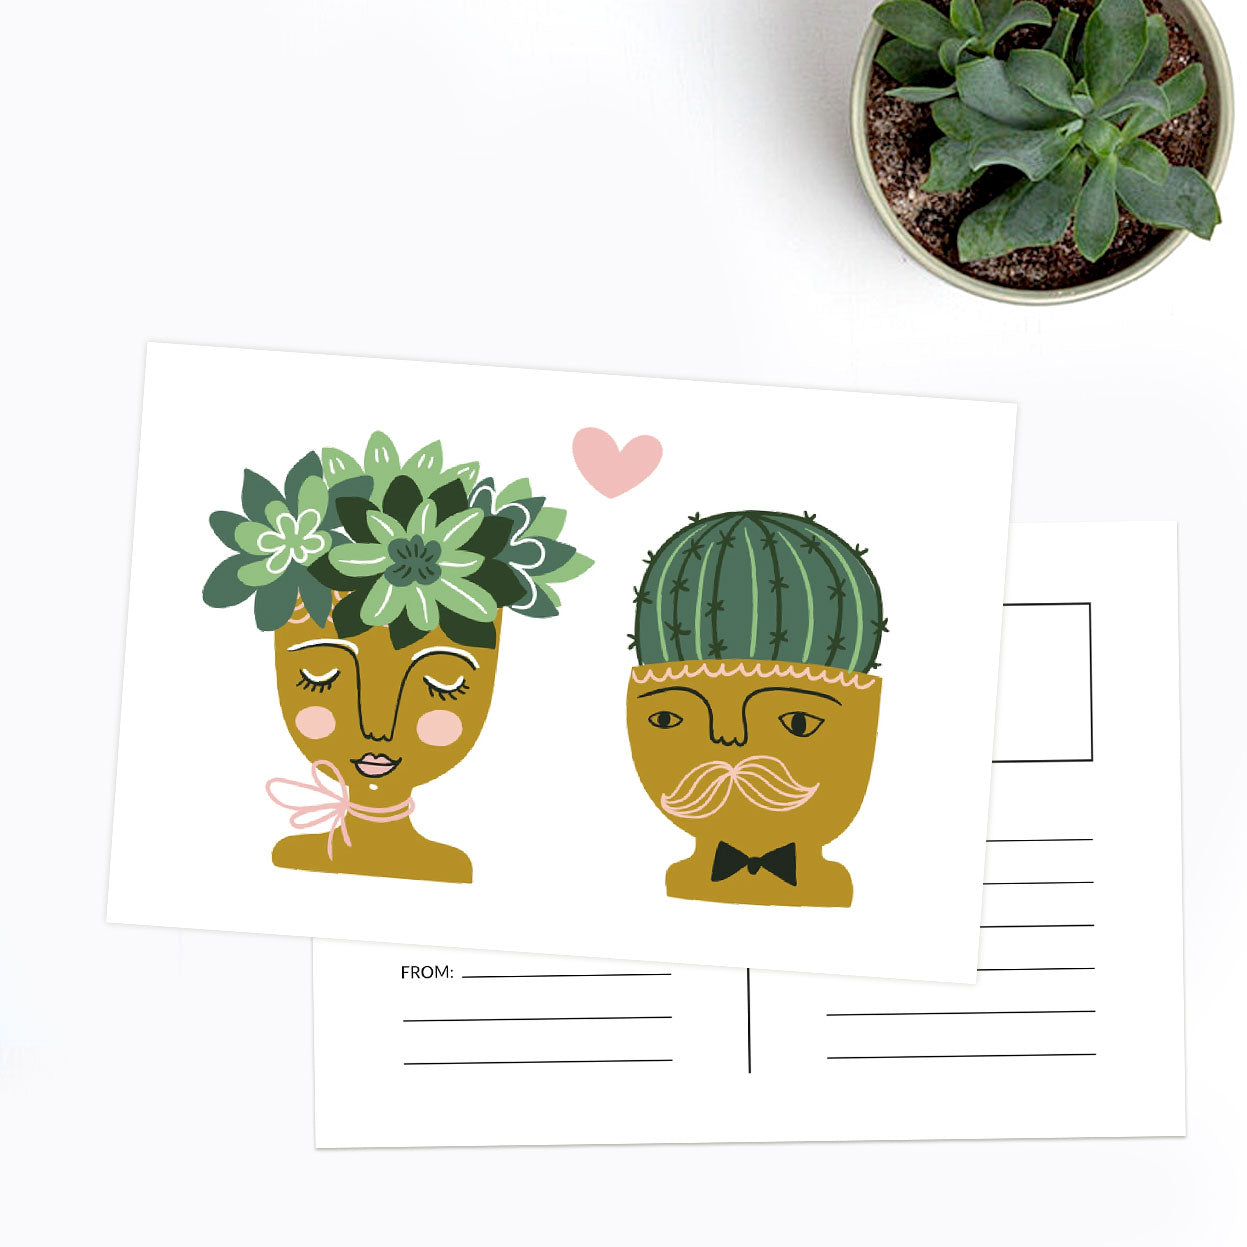 Succulent Anniversary Card for sale, Valentine's Day Card, Succulents Wedding Card, Succulents Gift Ideas